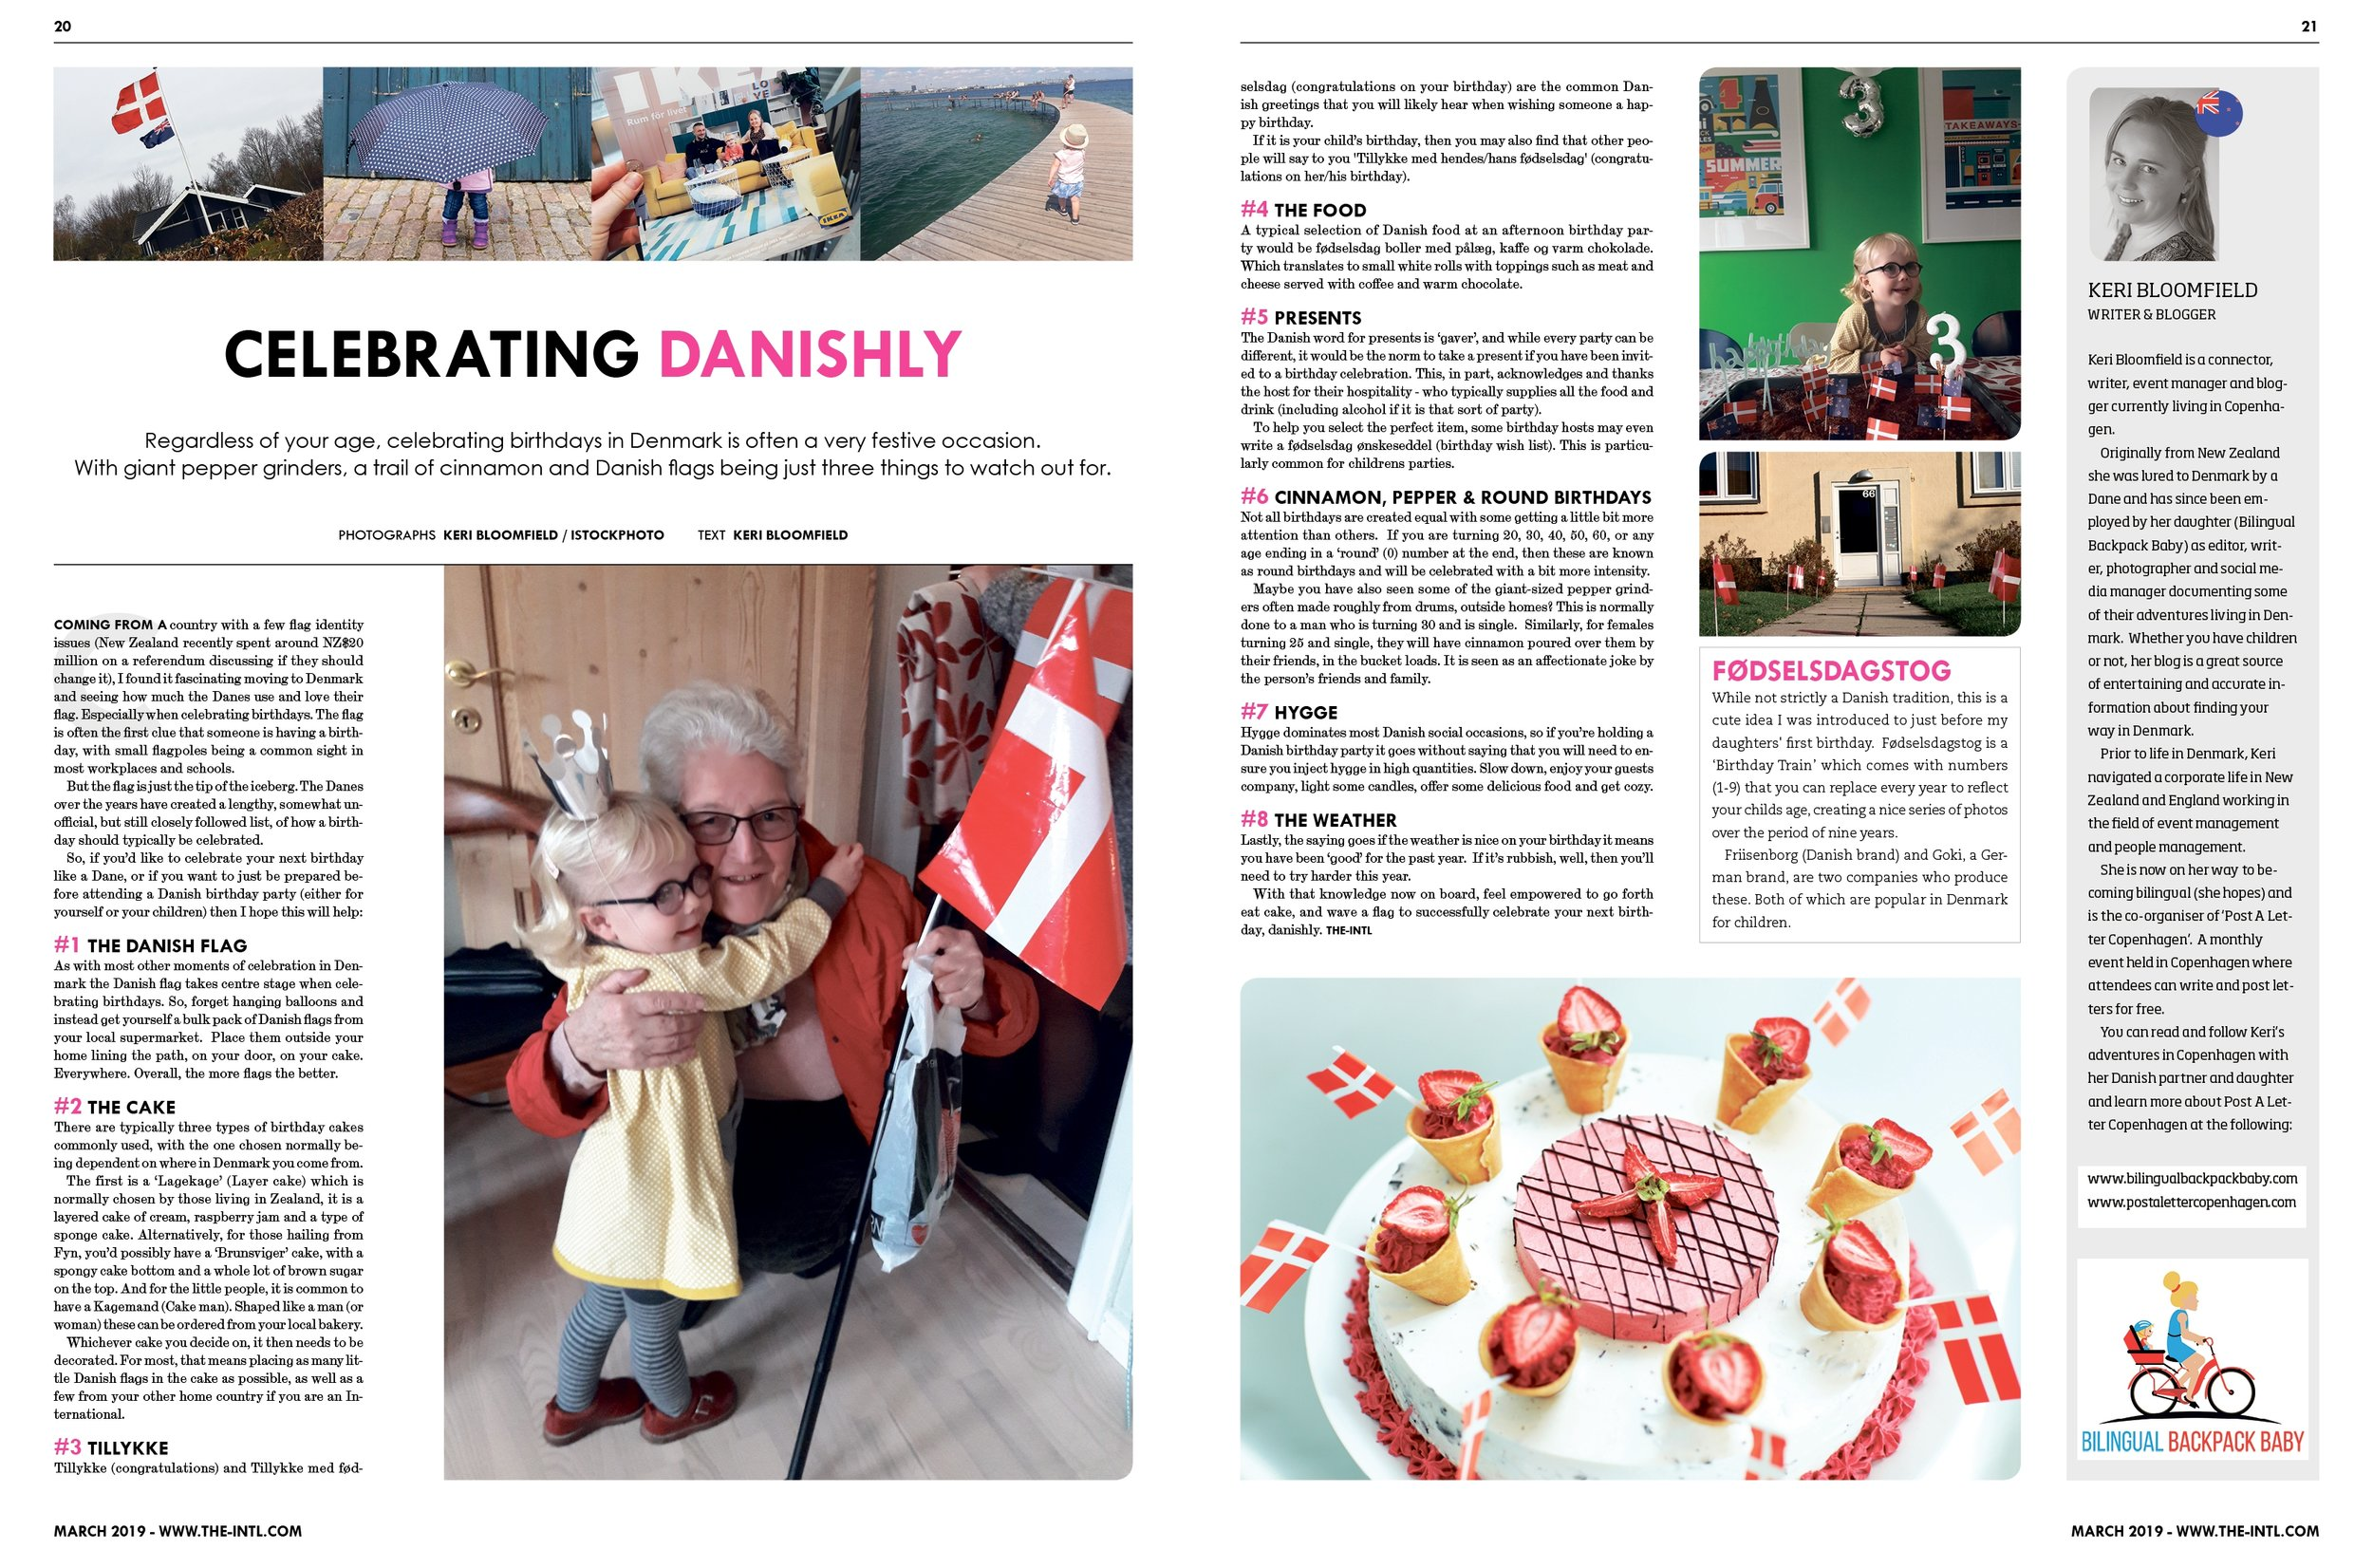 201903 March Celebrating Danishly.jpg